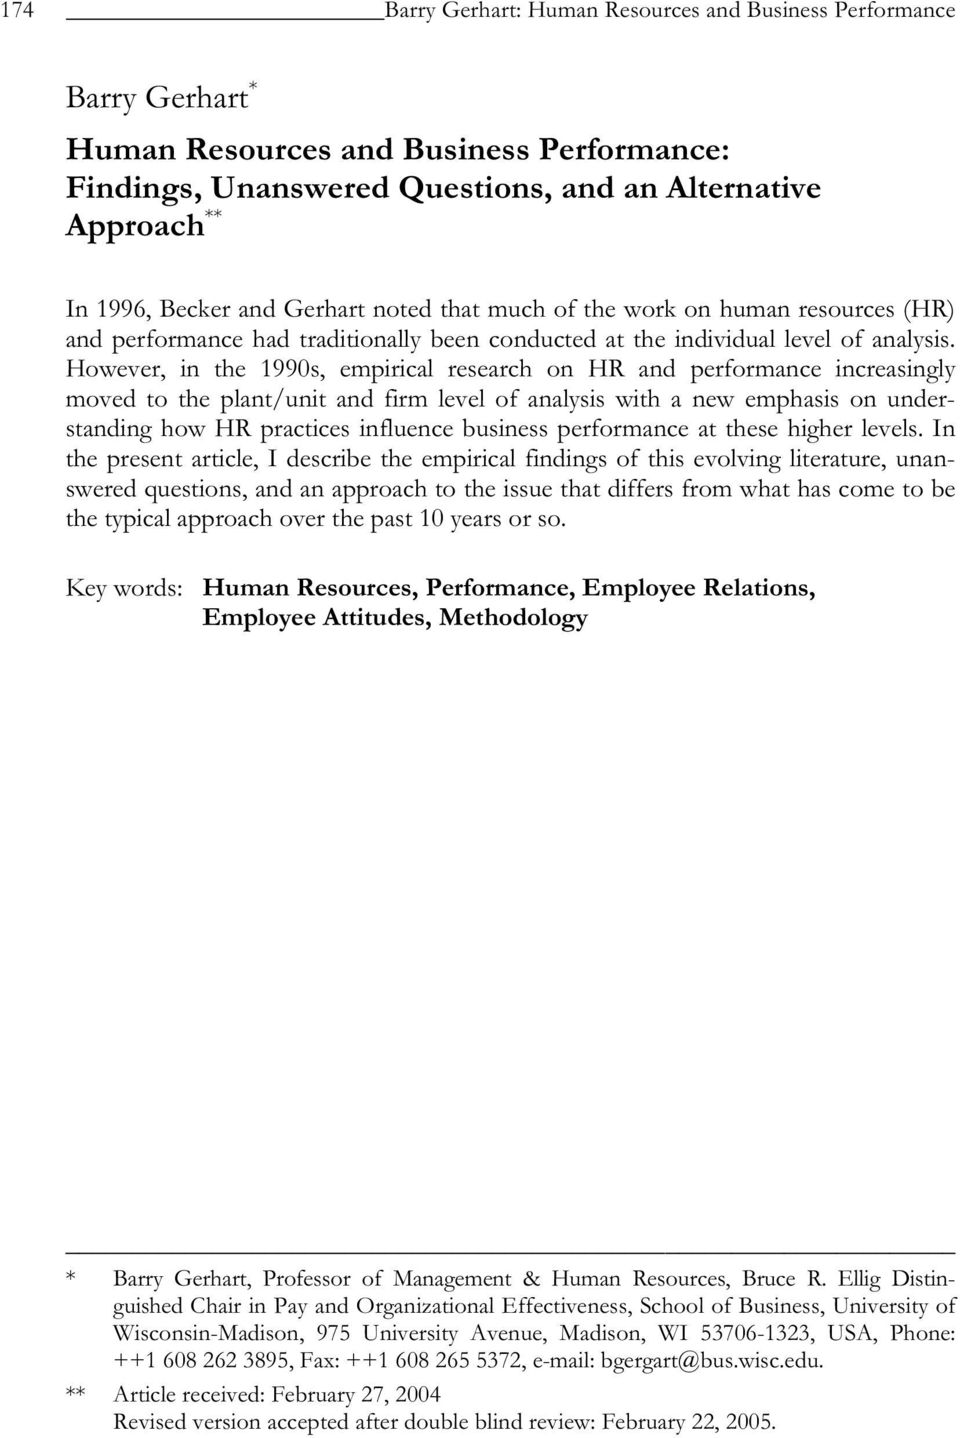 However, in the 1990s, empirical research on HR and performance increasingly moved to the plant/unit and firm level of analysis with a new emphasis on understanding how HR practices influence